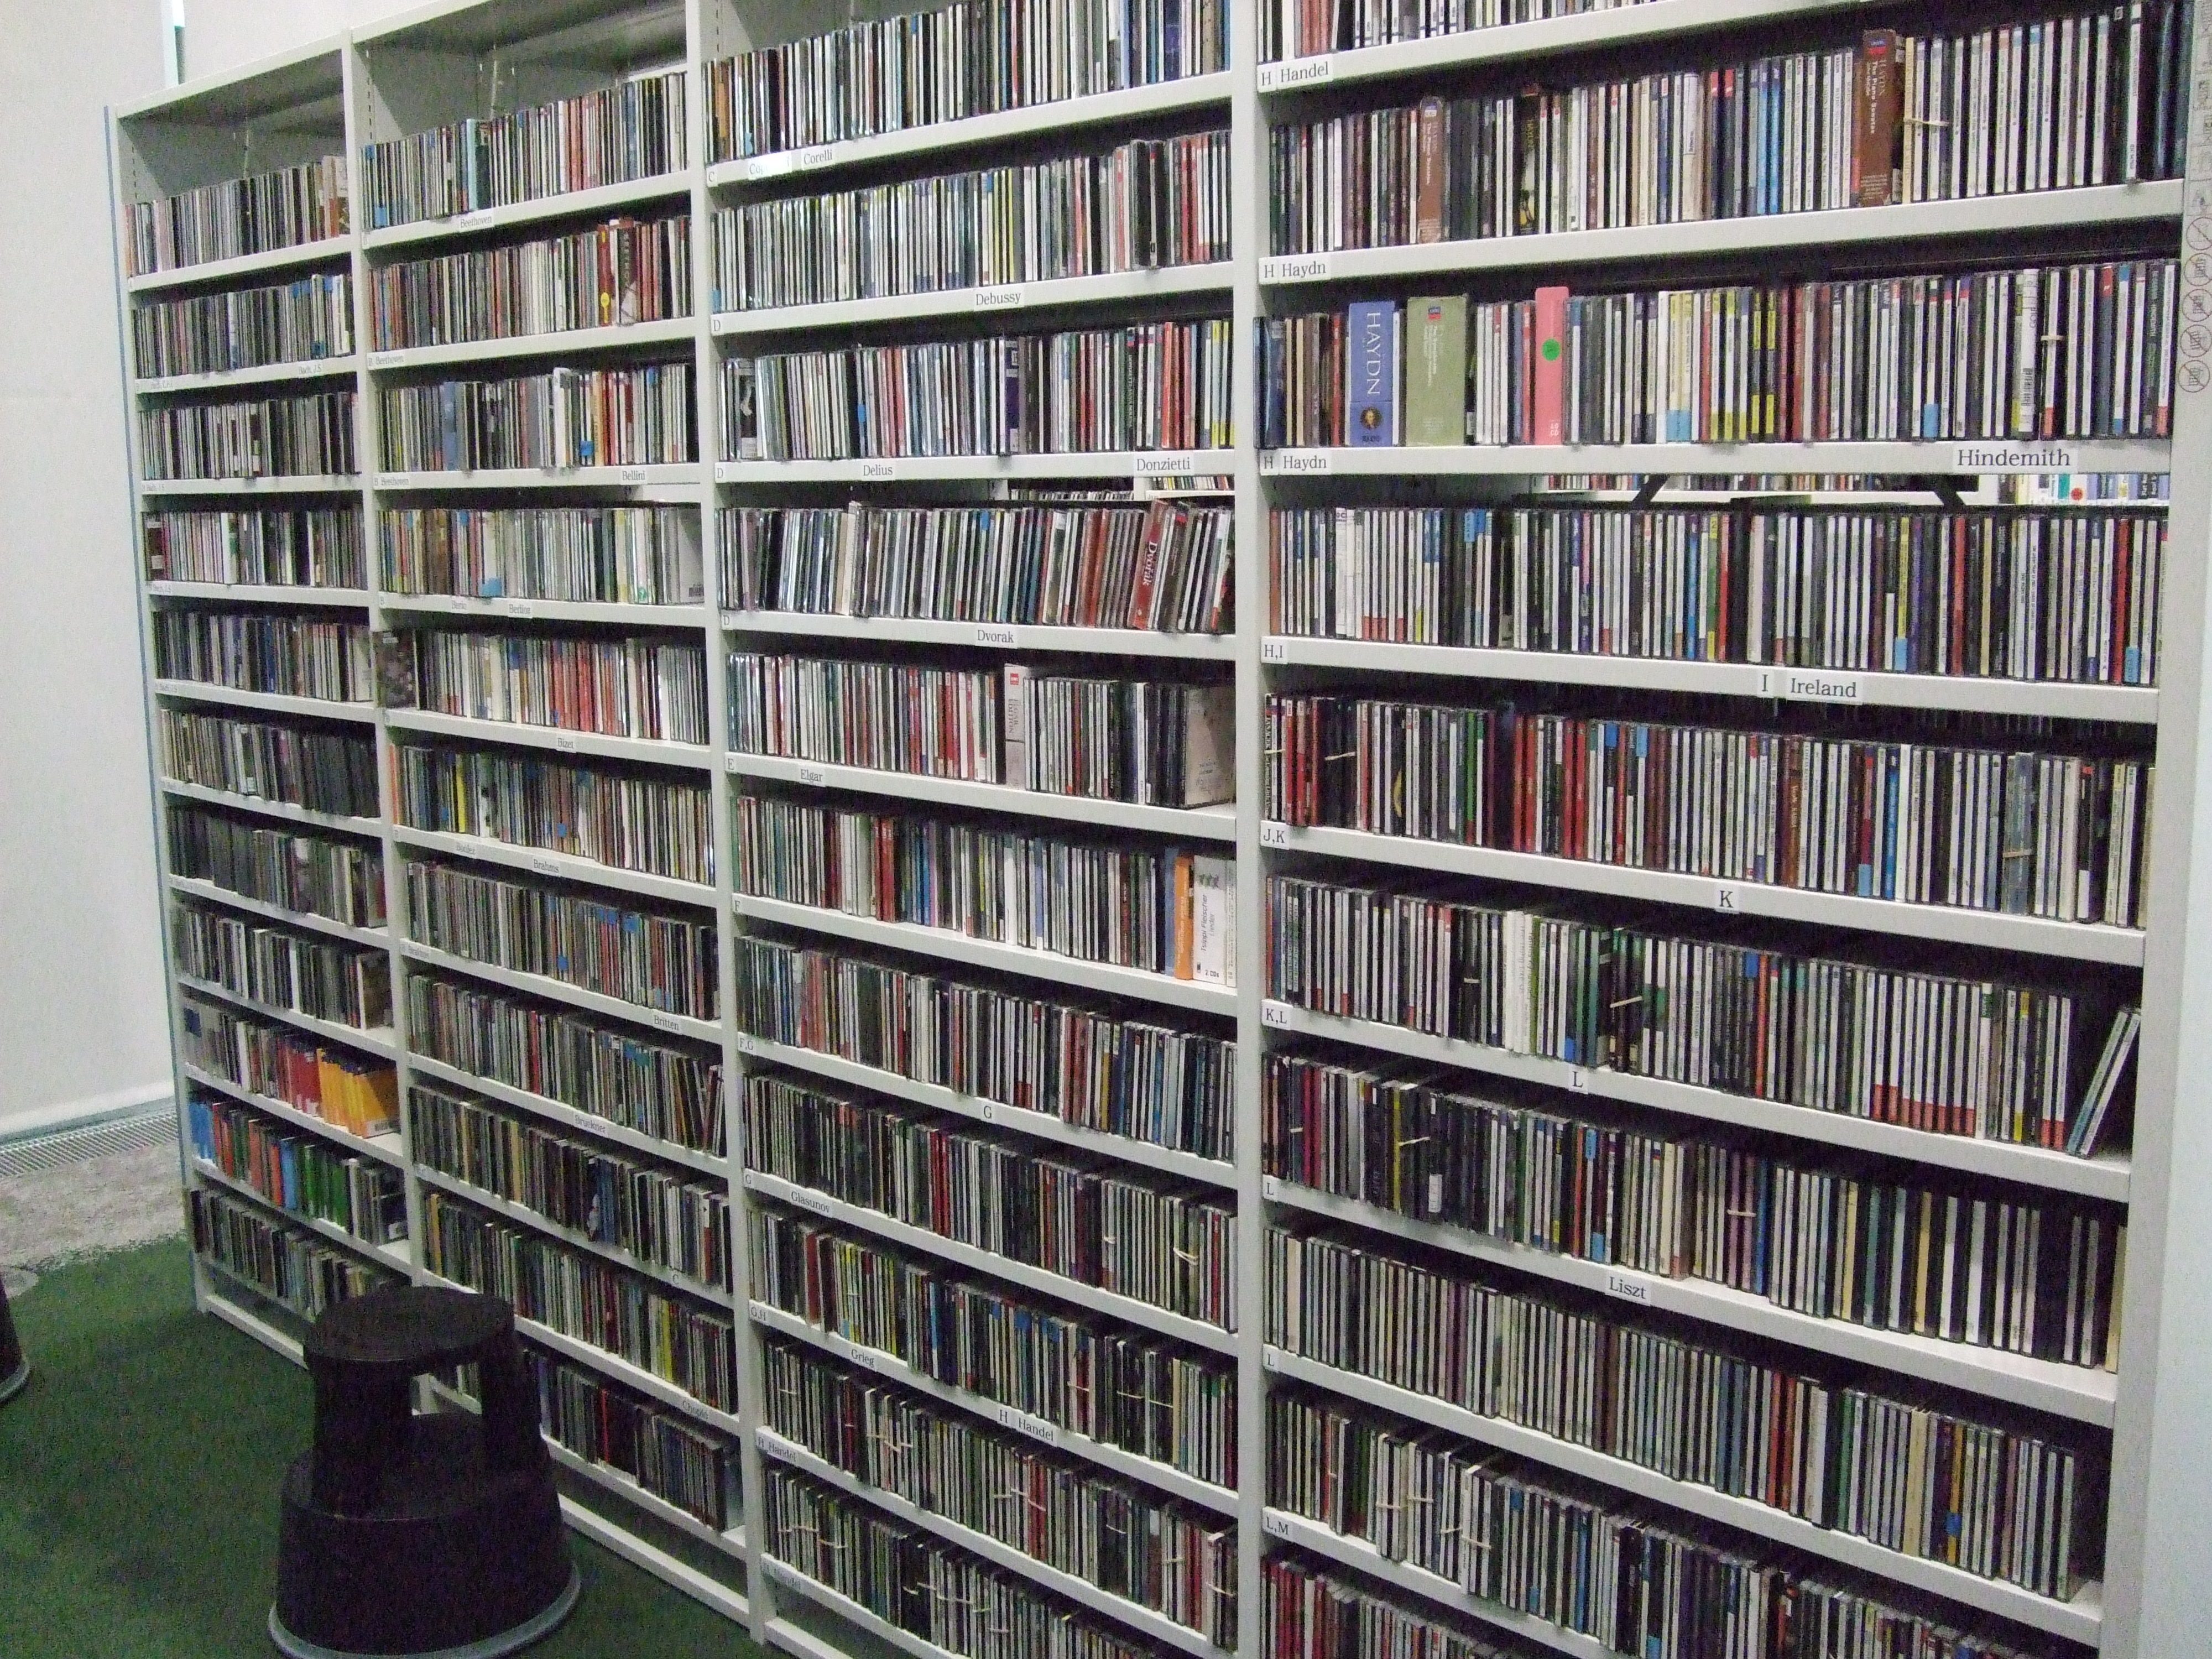 CDs in Curzon Room C001